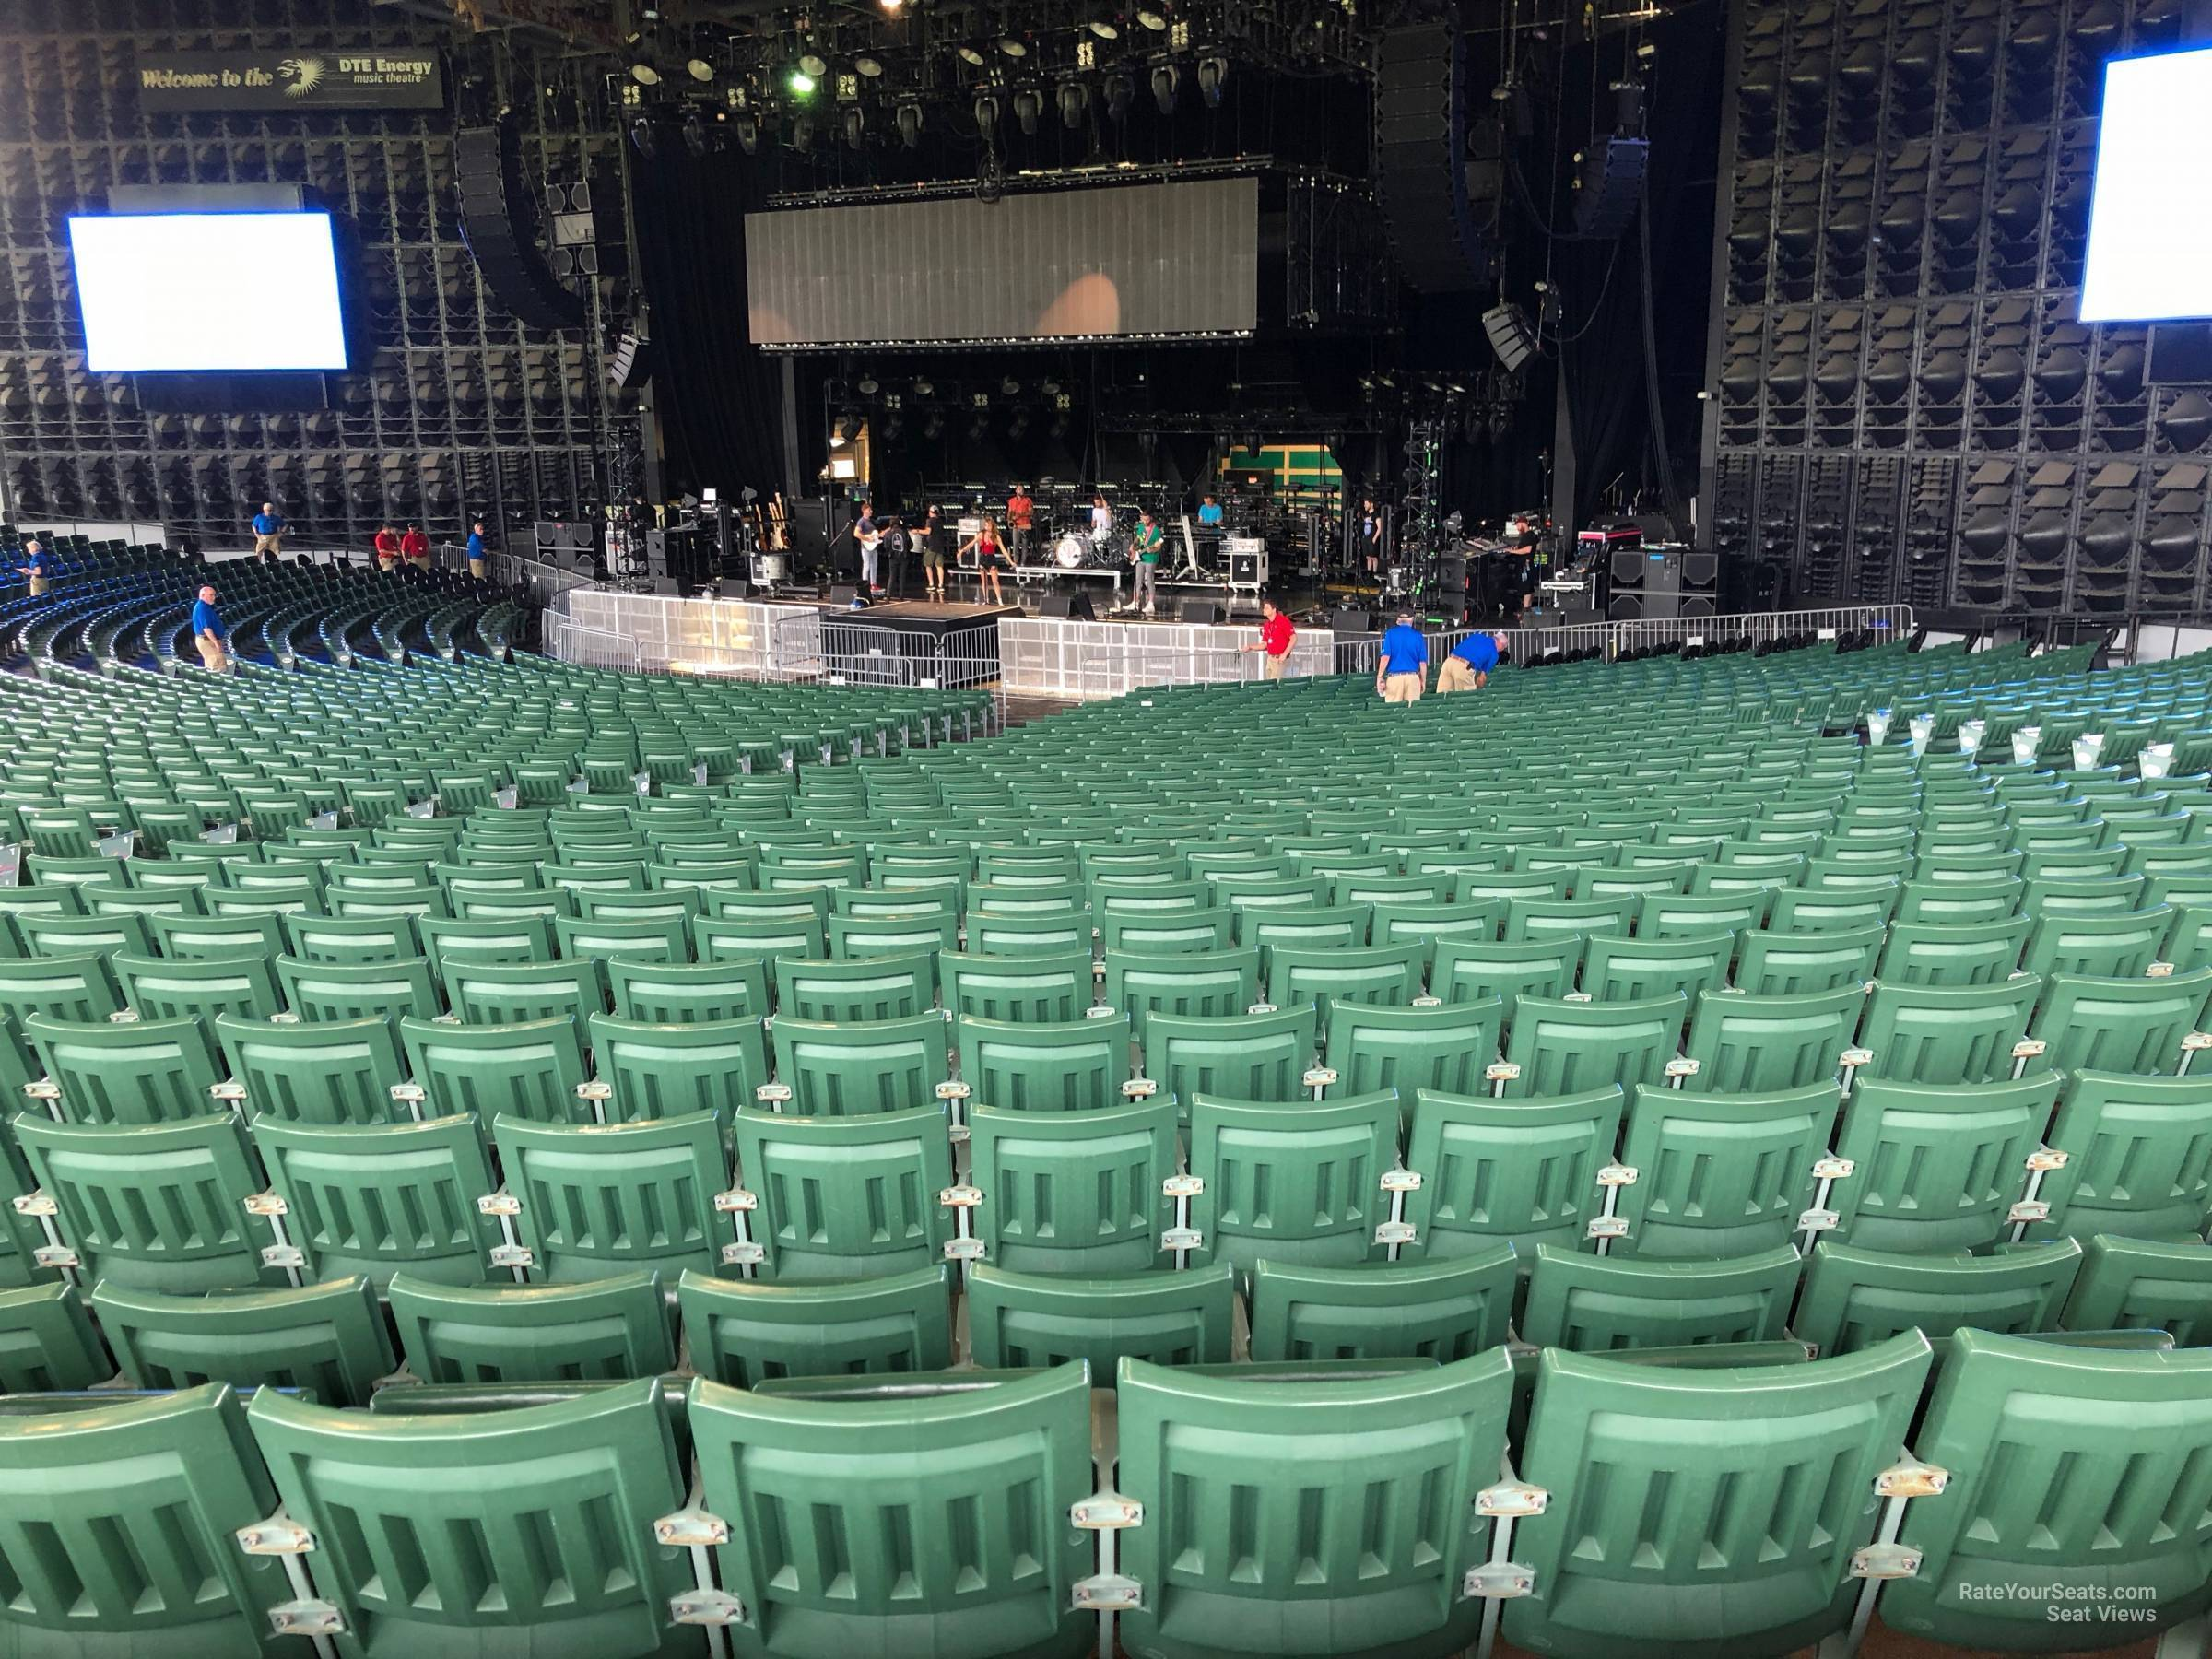 Right Center 6 seat view